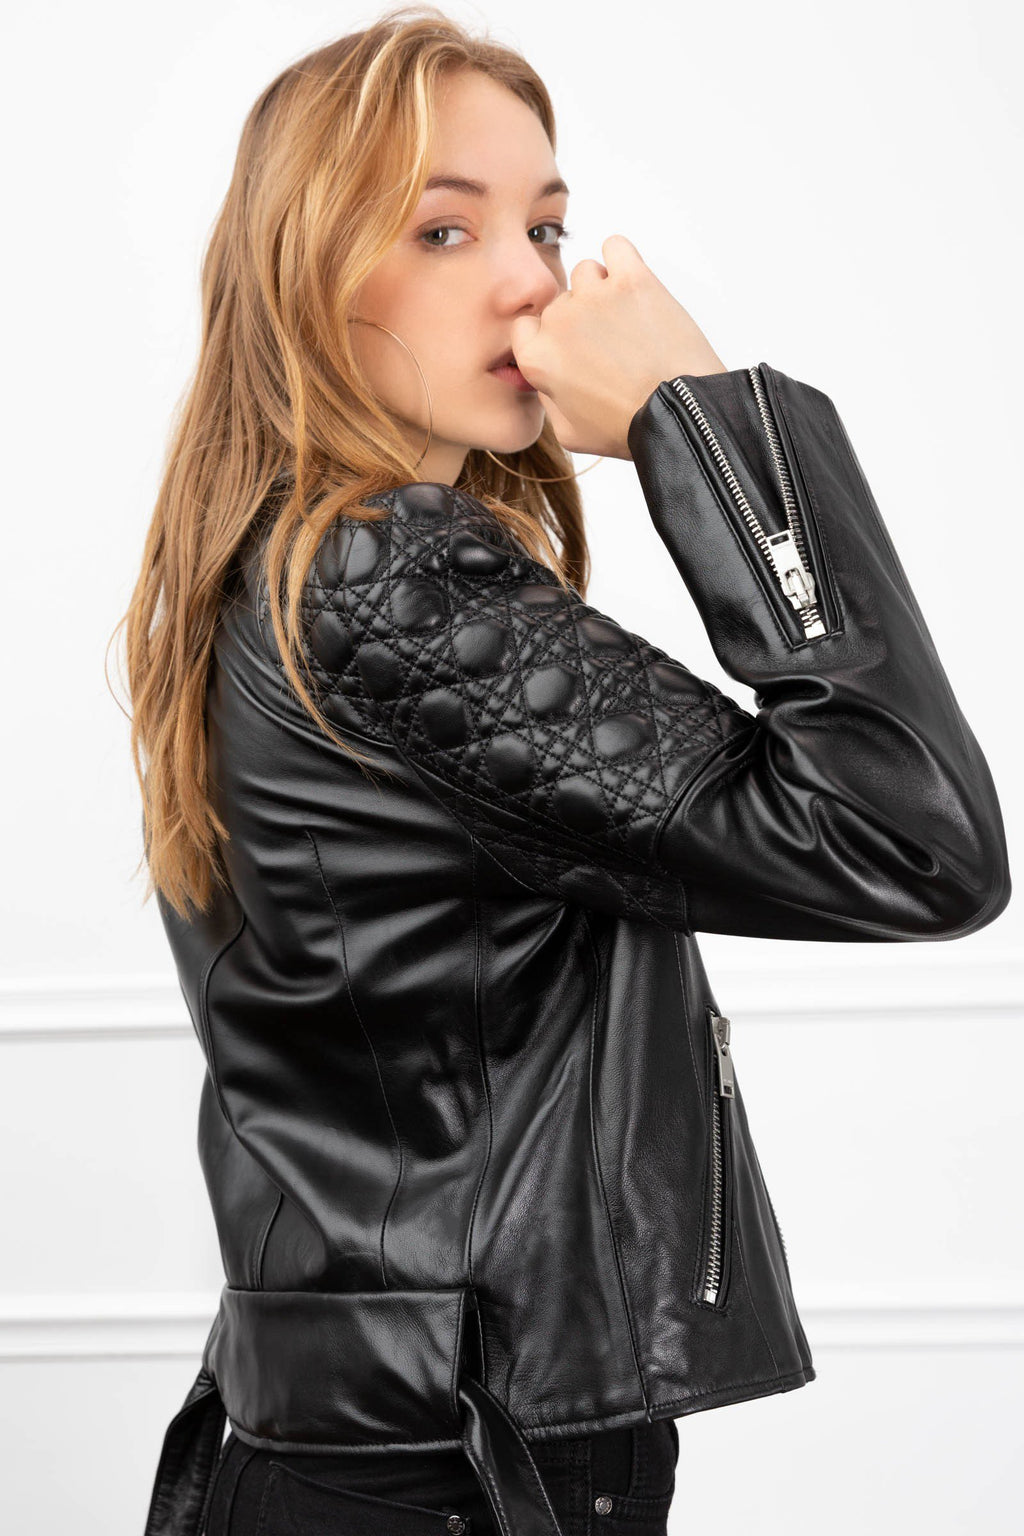 Angelina Jacket in Coats & Jackets by J.ING - an L.A based women's fashion line